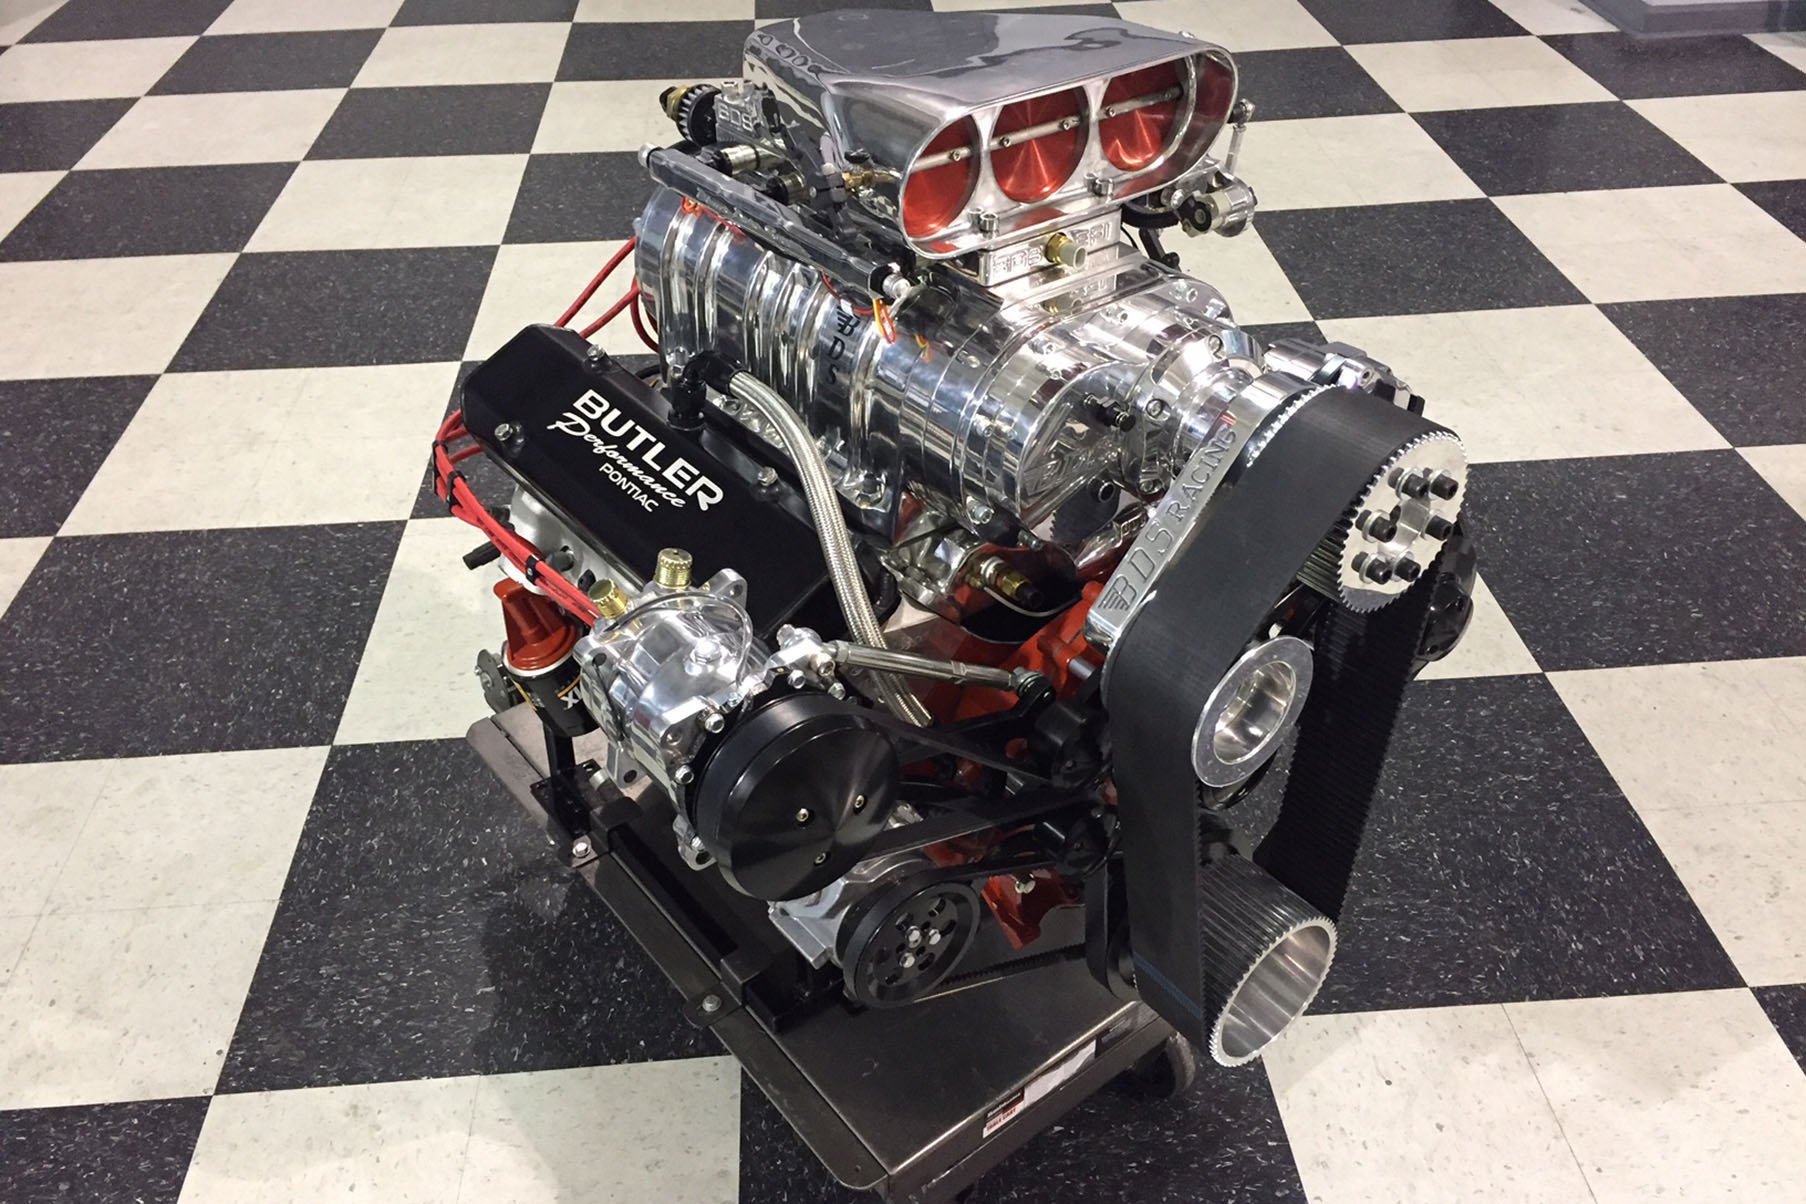 Engine Spotlight Butler Performances 535ci Blown Pontiac March Serpentine Performance Uses Its Own In House Components For A Number Of The Motors Internals Including An 80psi Oil Pump Two Piece 083 X 5 16 Restricted